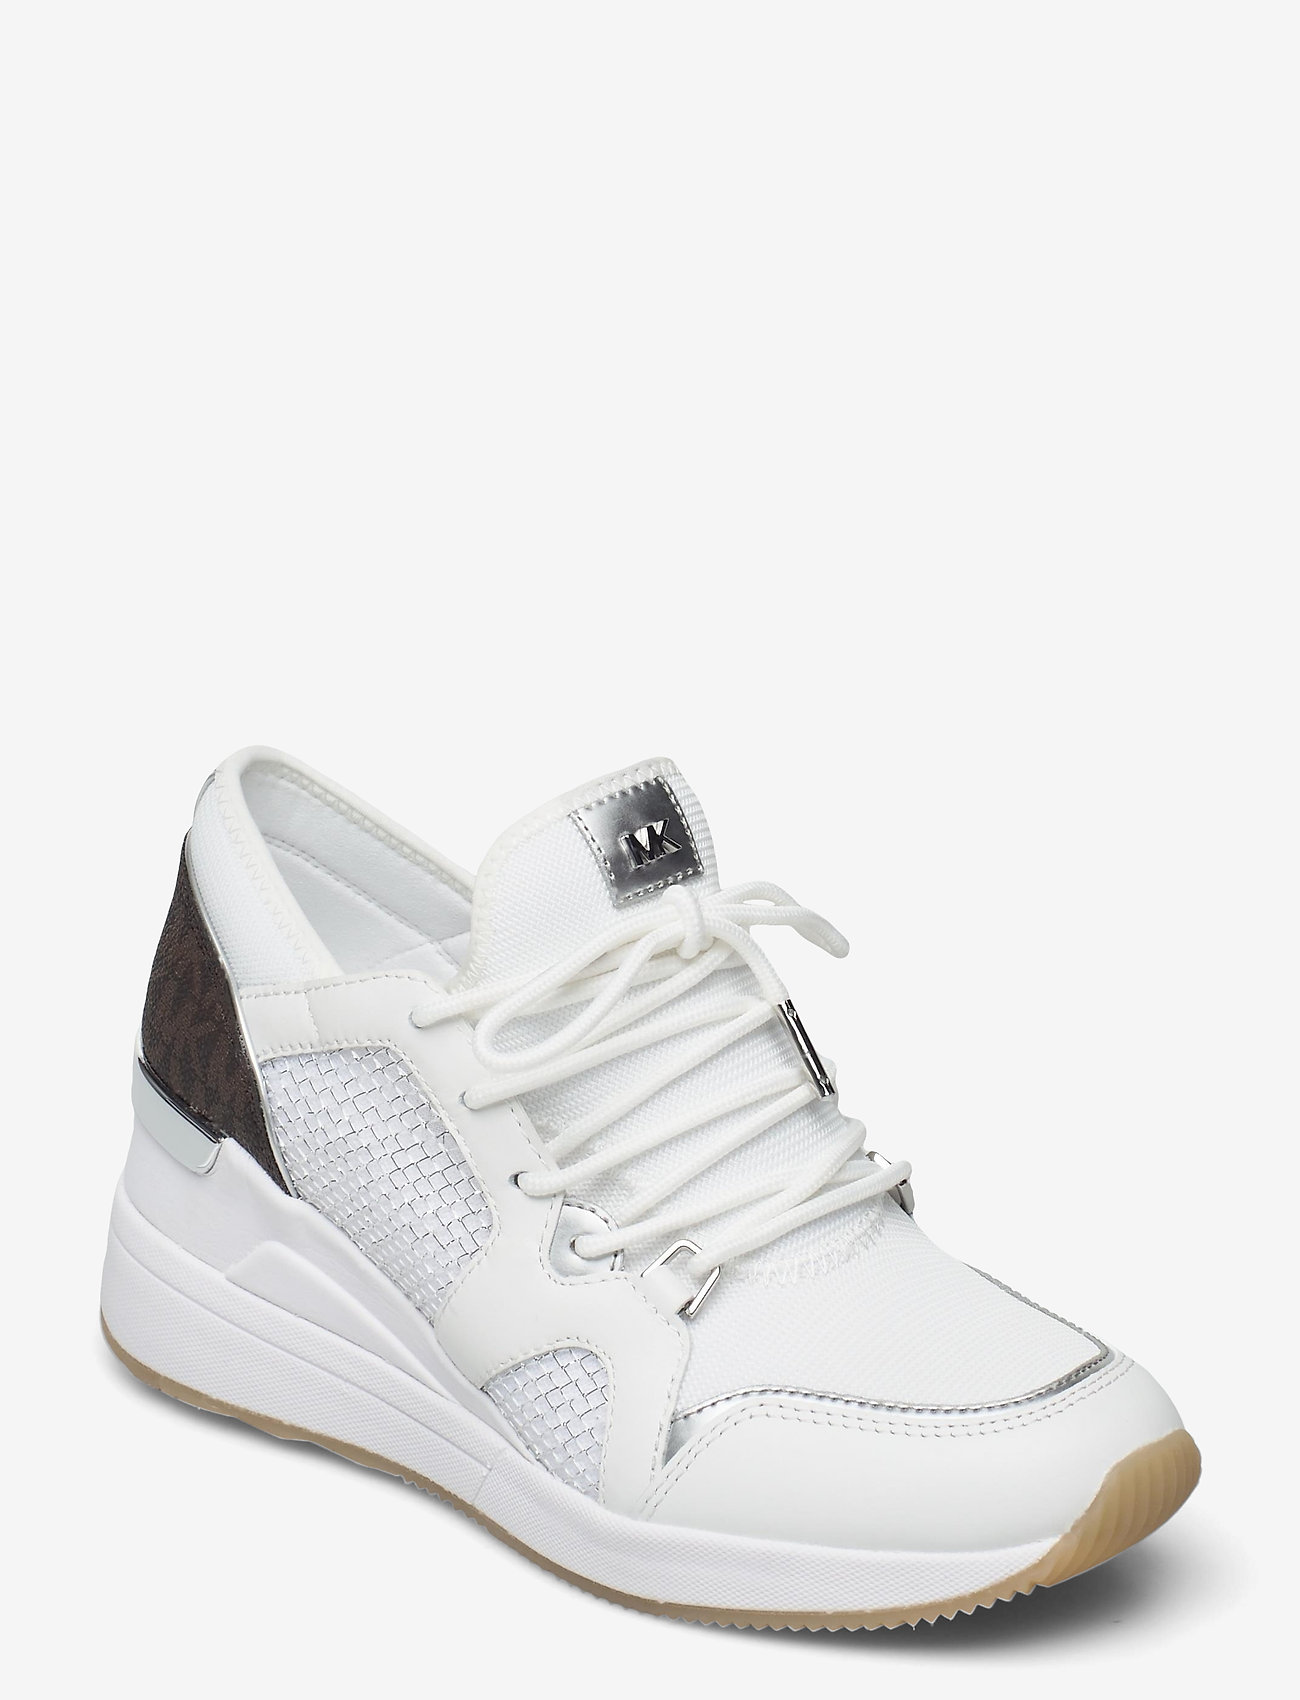 Michael Kors - LIV TRAINER - chunky sneakers - opwht multi - 0